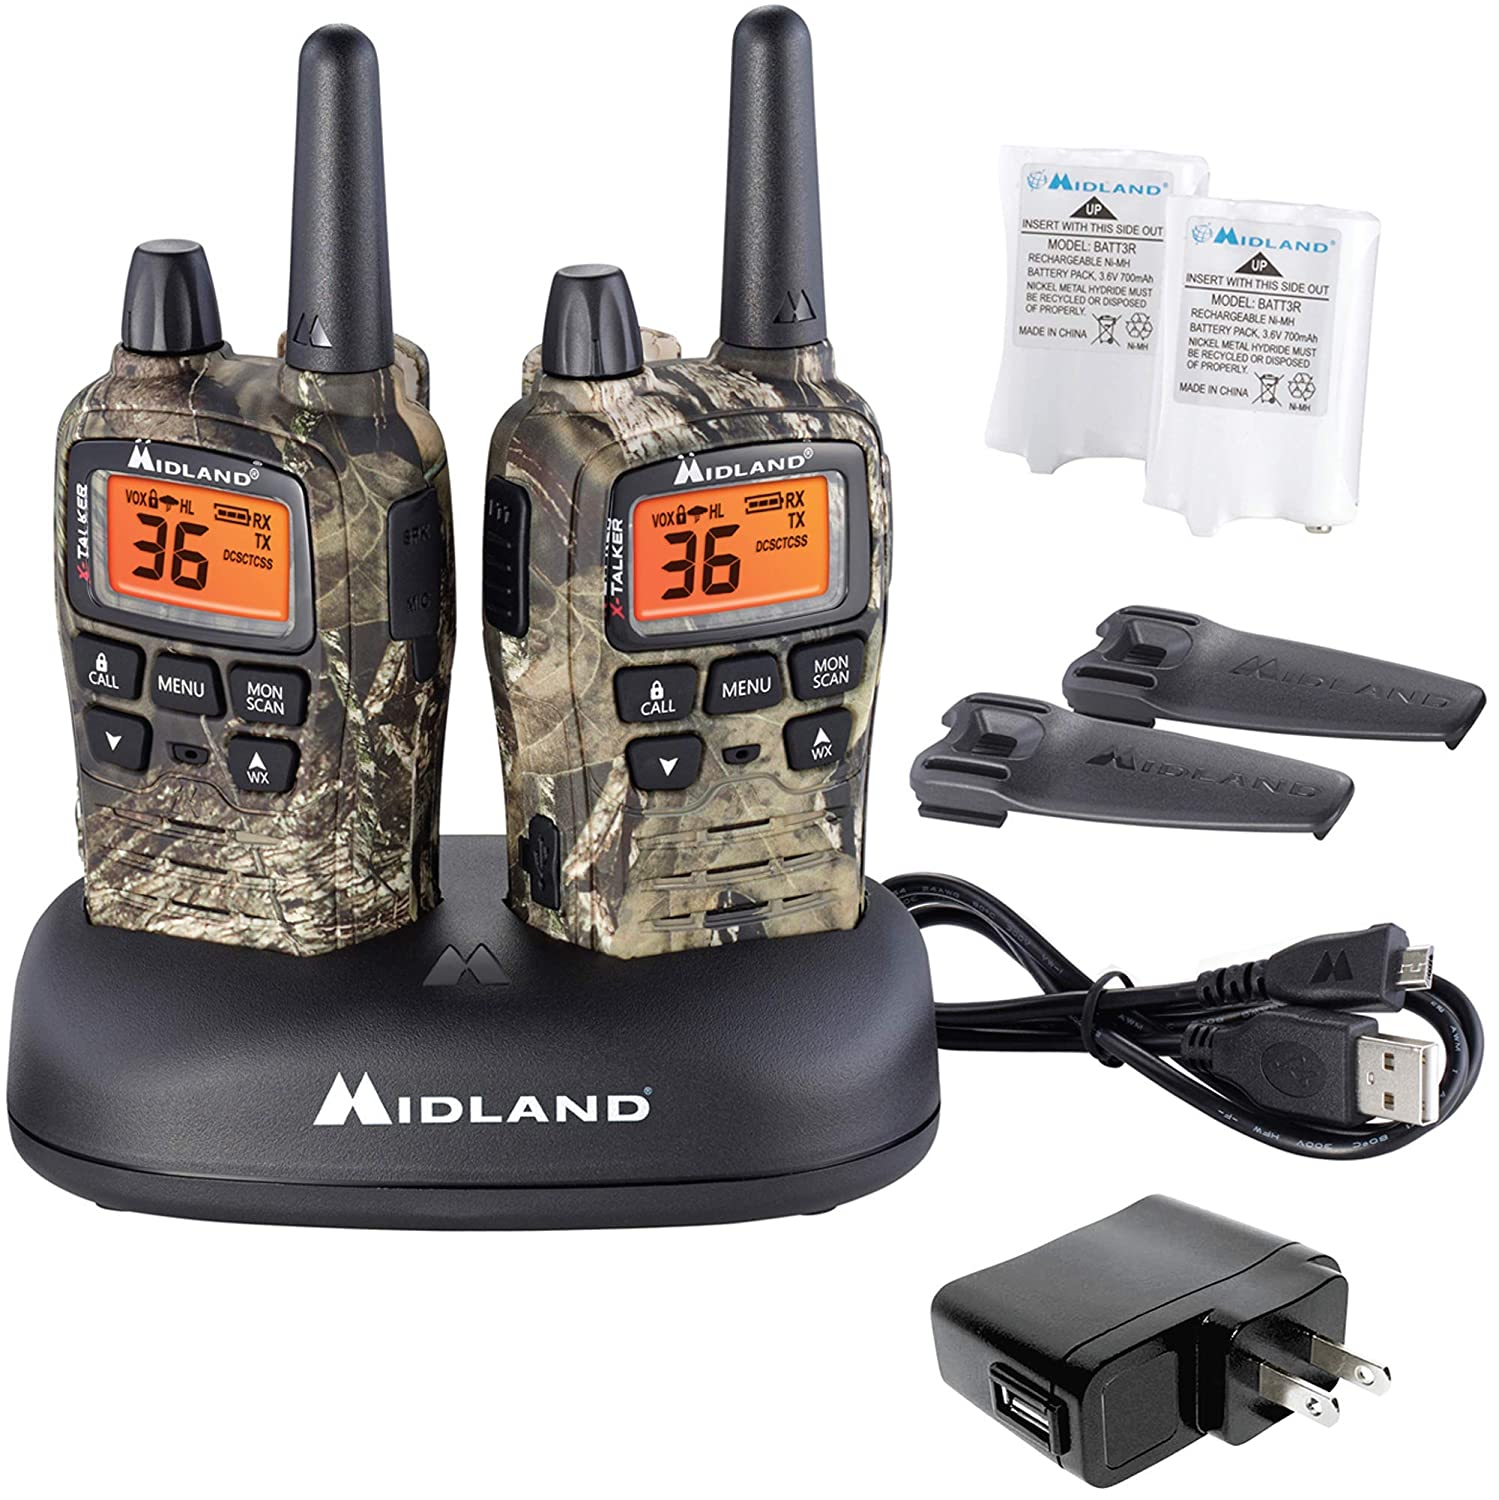 Midland – X-TALKER T75VP3, 36 Channel FRS Two-Way Radio – Up to 38 Mile Range Walkie Talkie, 121 Privacy Codes, NOAA Weather Scan Alert Pair Pack Mossy Oak Camo